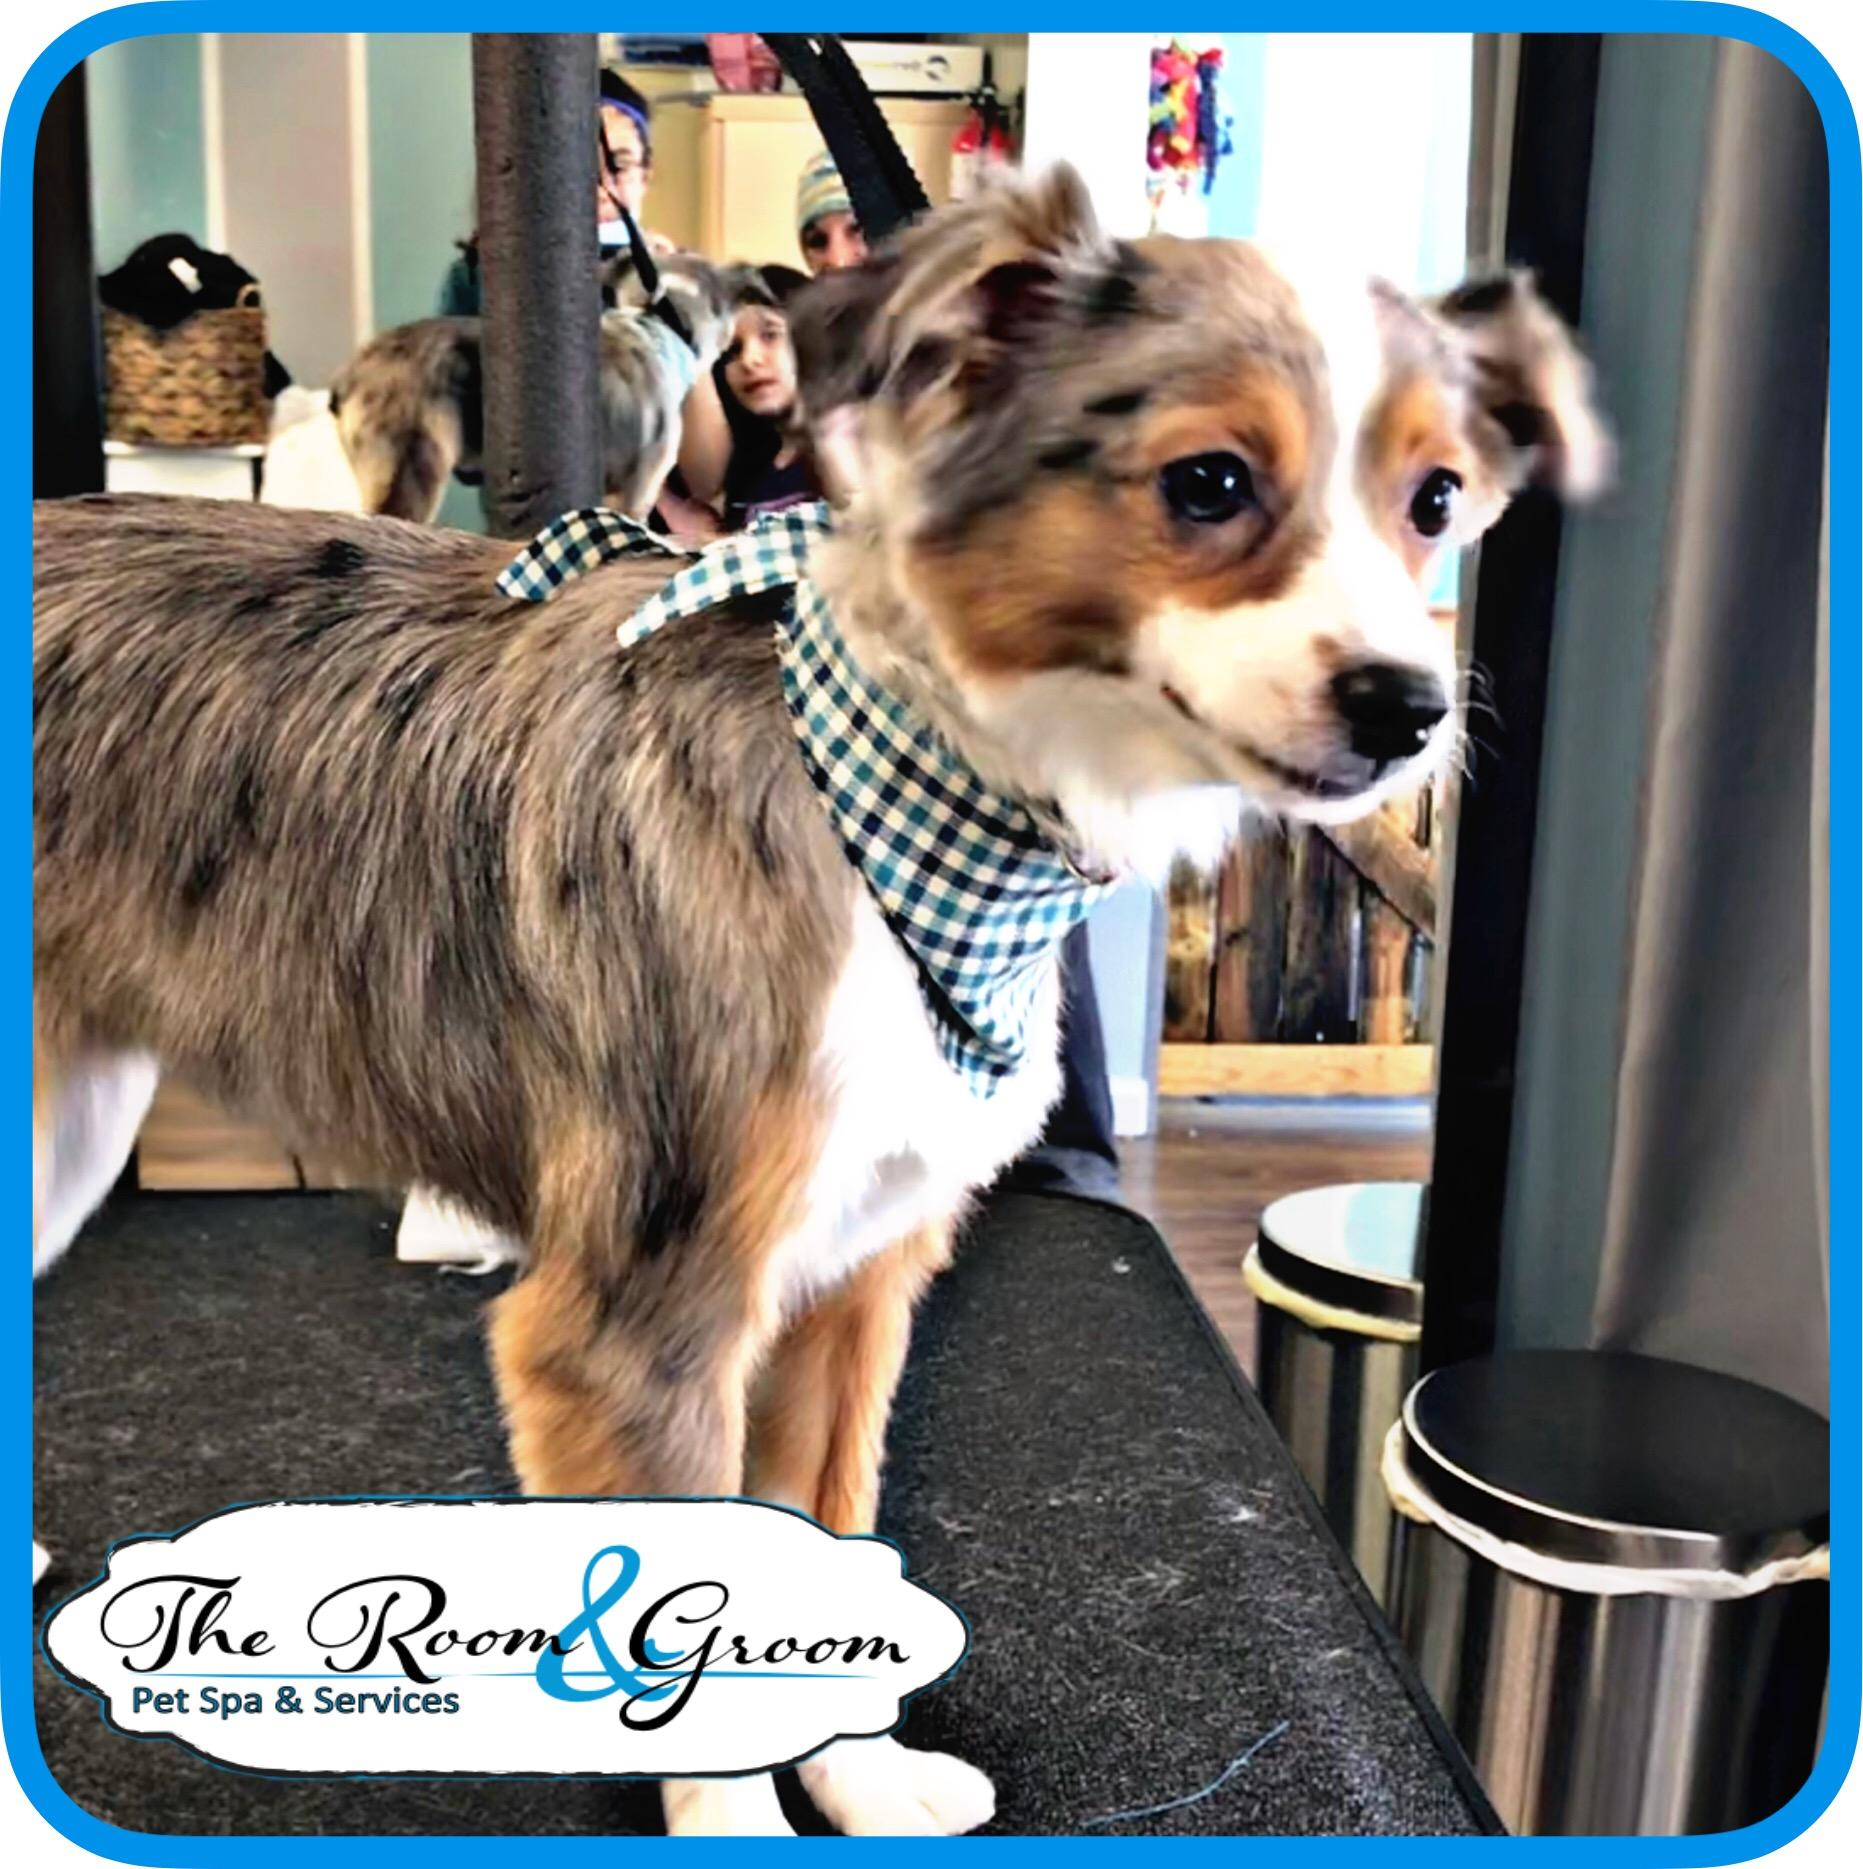 The Room & Groom, Pet Spa & Services image 35